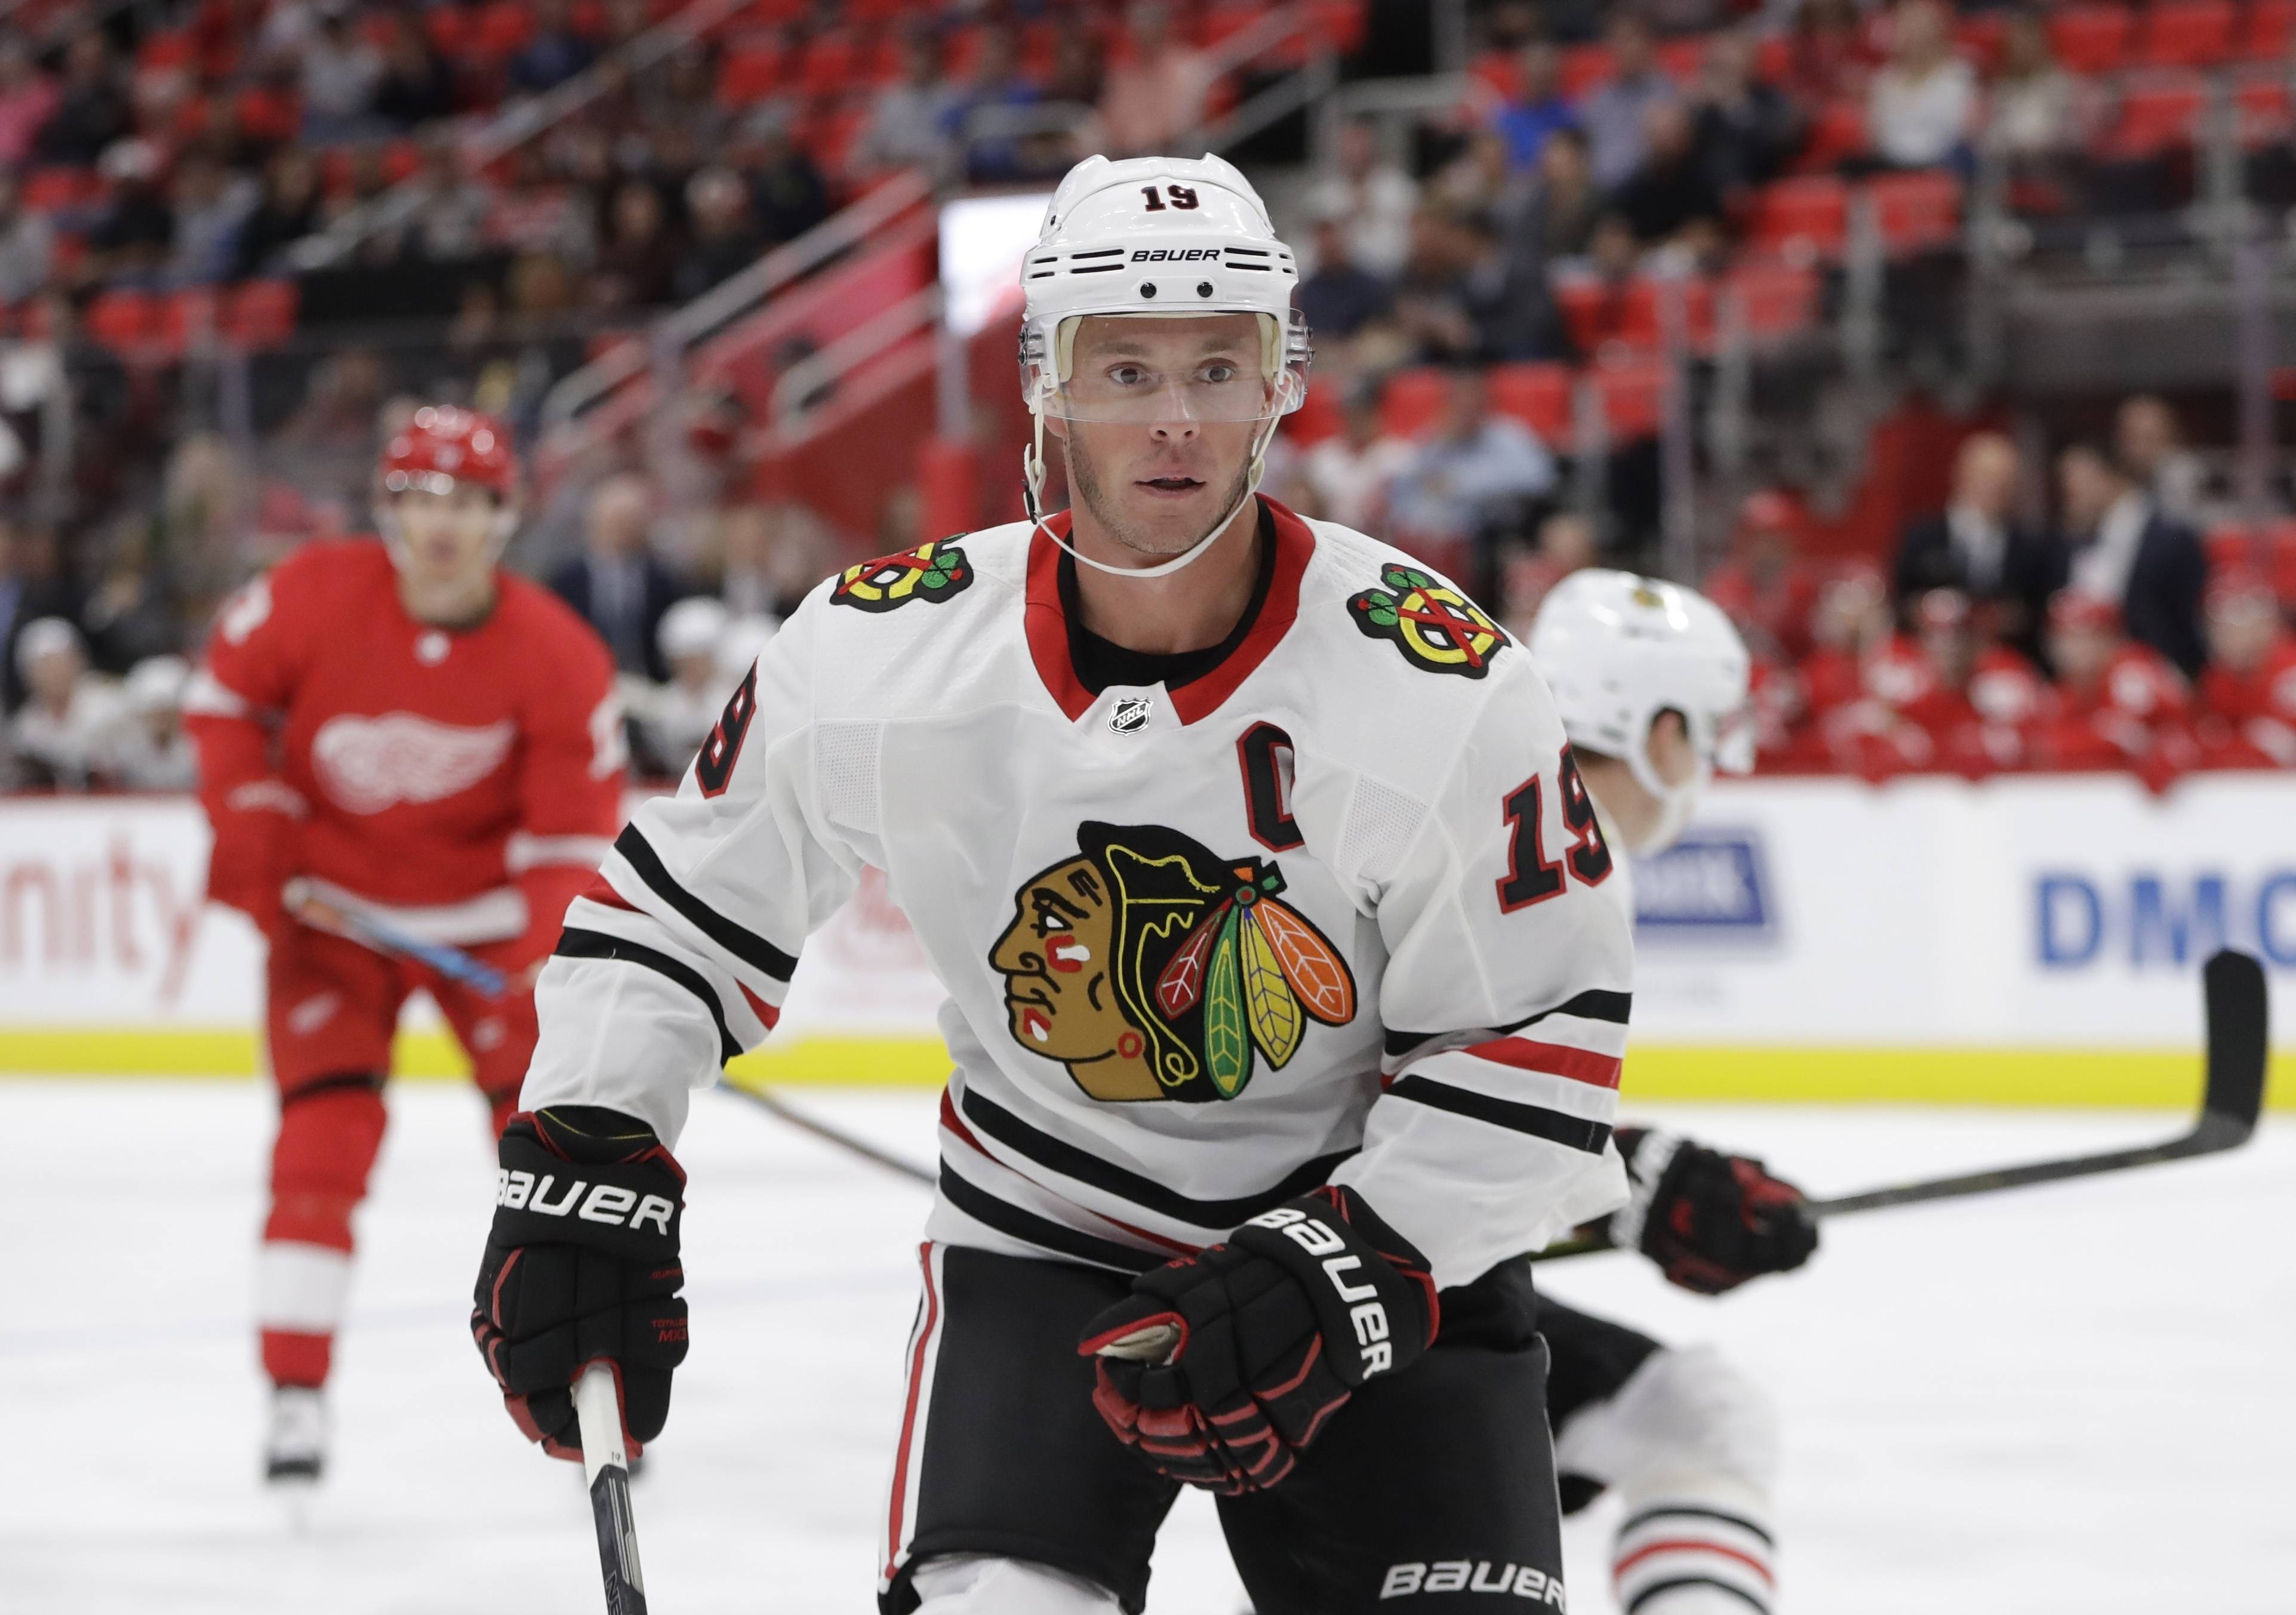 Chicago Blackhawks center Jonathan Toews chases the puck during the first period of an NHL hockey game against the Detroit Red Wings, Thursday, Sept. 28,2017, in Detroit.